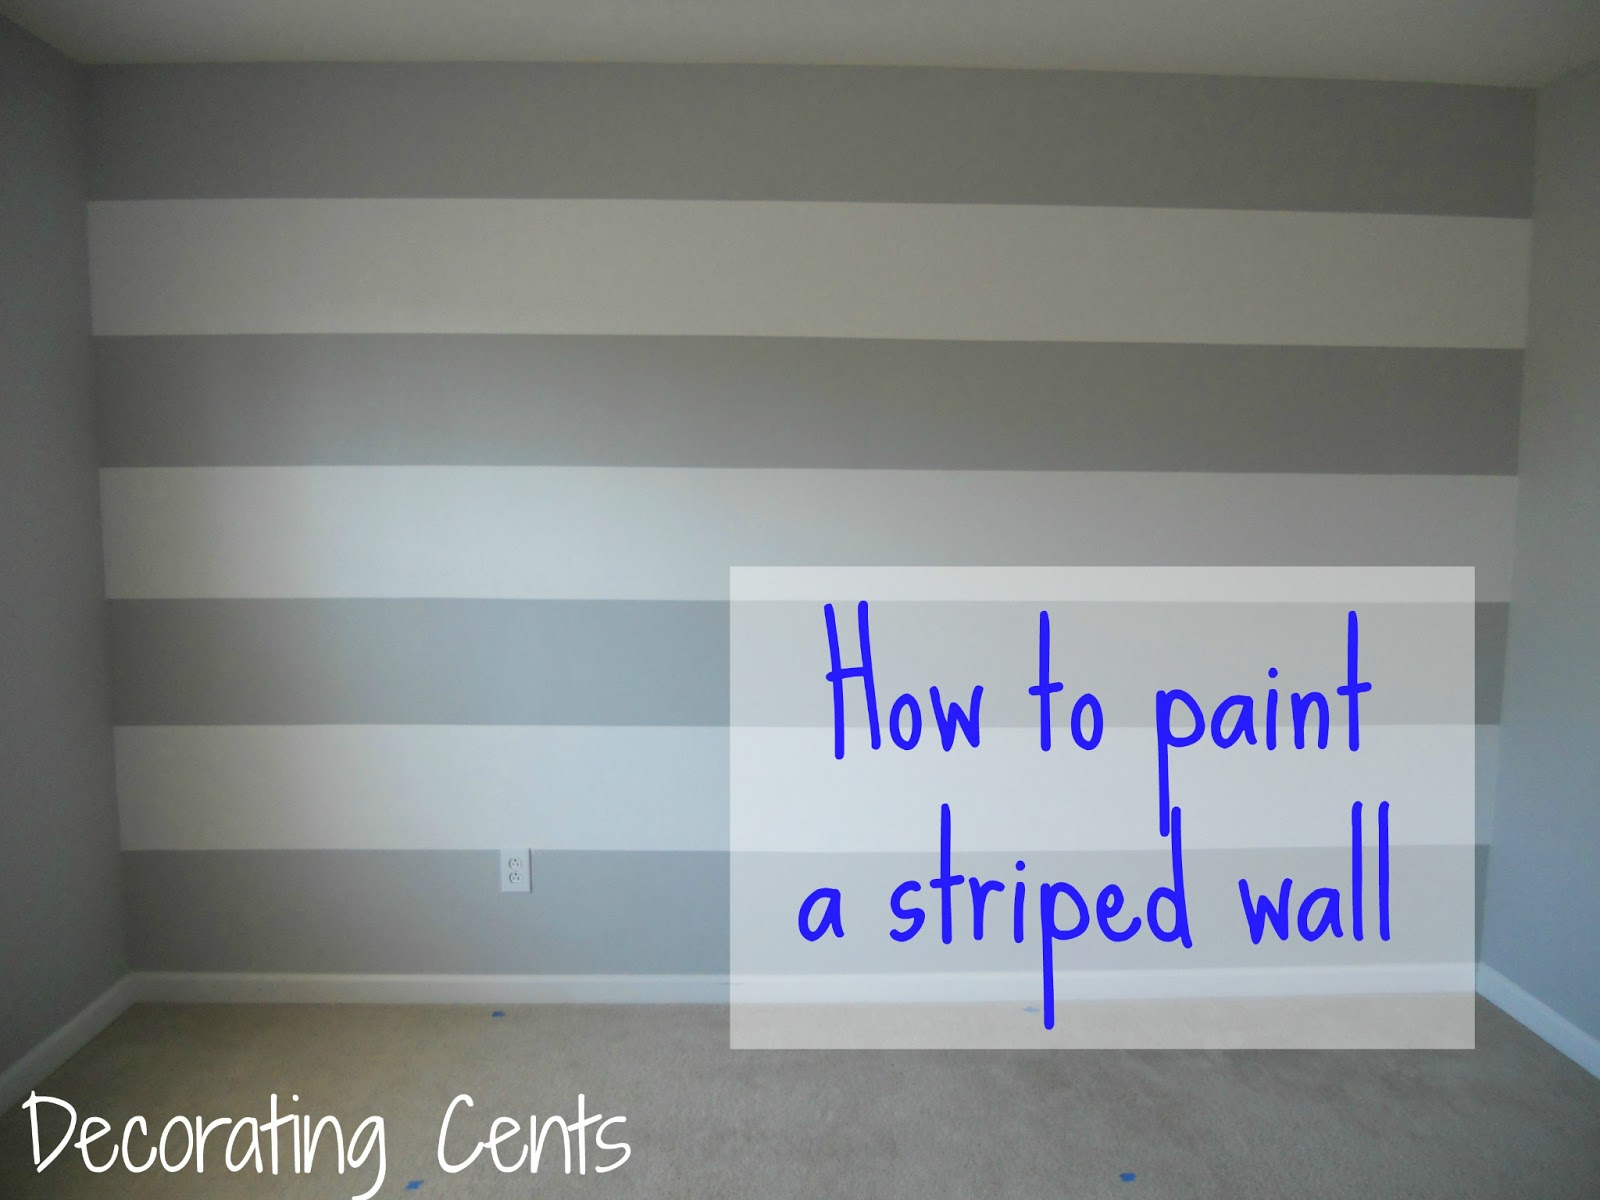 Wall bedroom painting : Decorating cents painting a striped wall